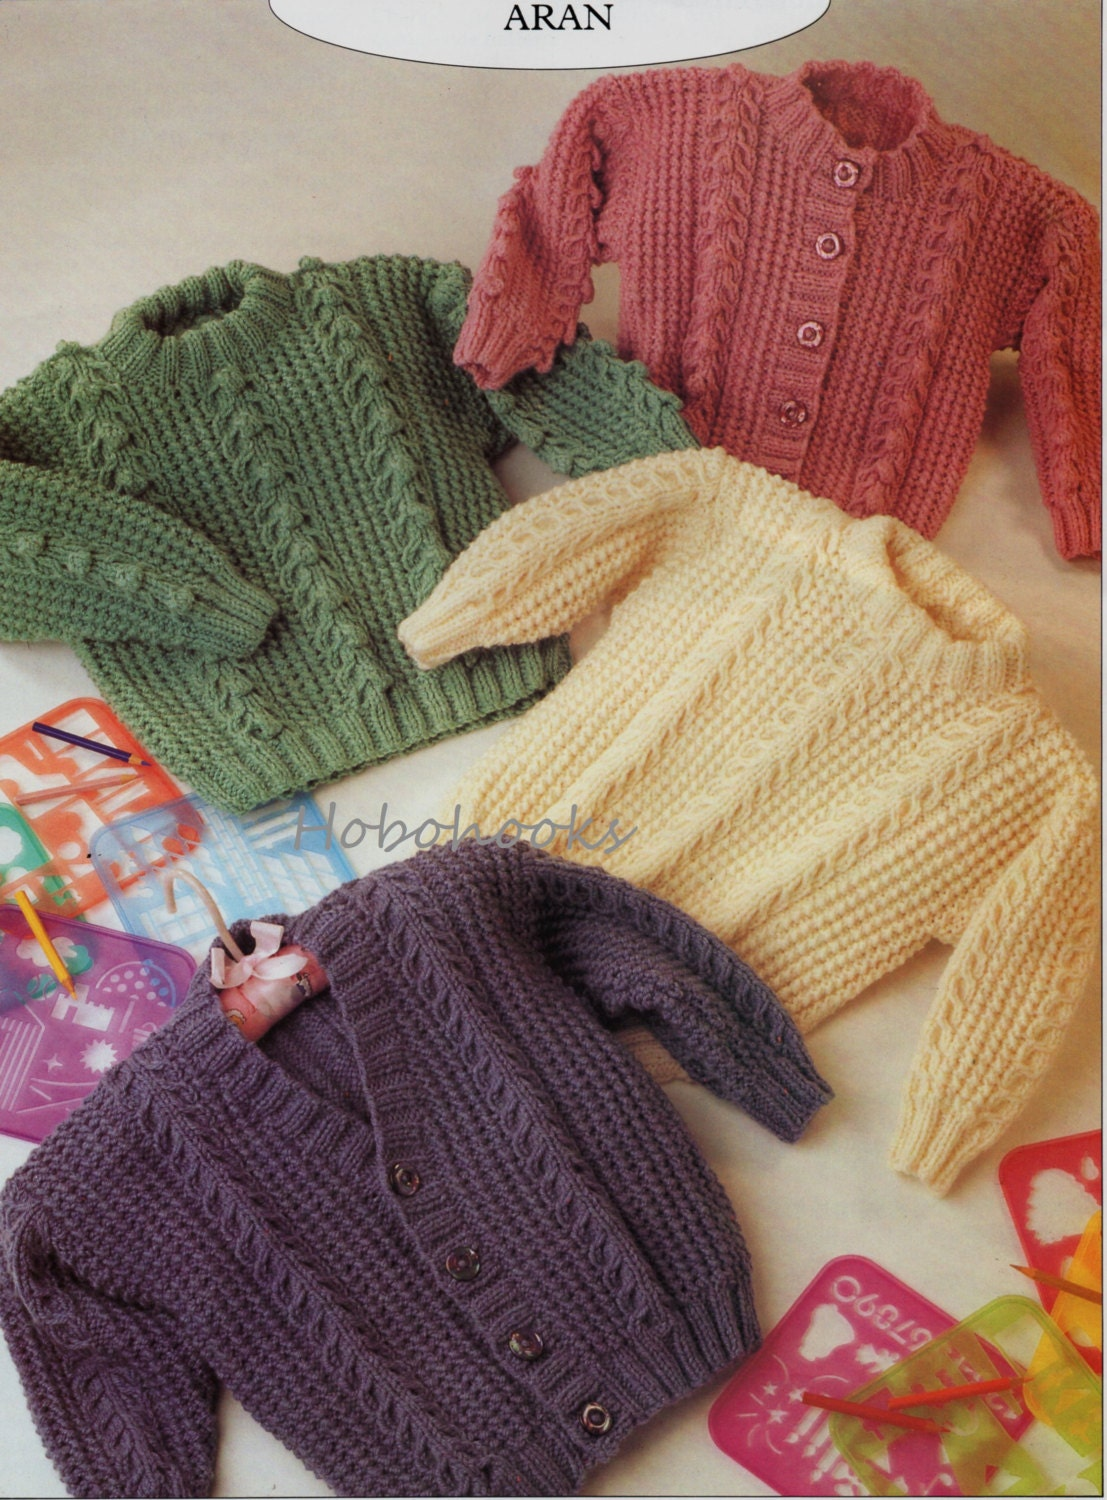 Aran Childrens Knitting Patterns : Baby Knitting Pattern Childs Knitting Pattern aran jumper aran